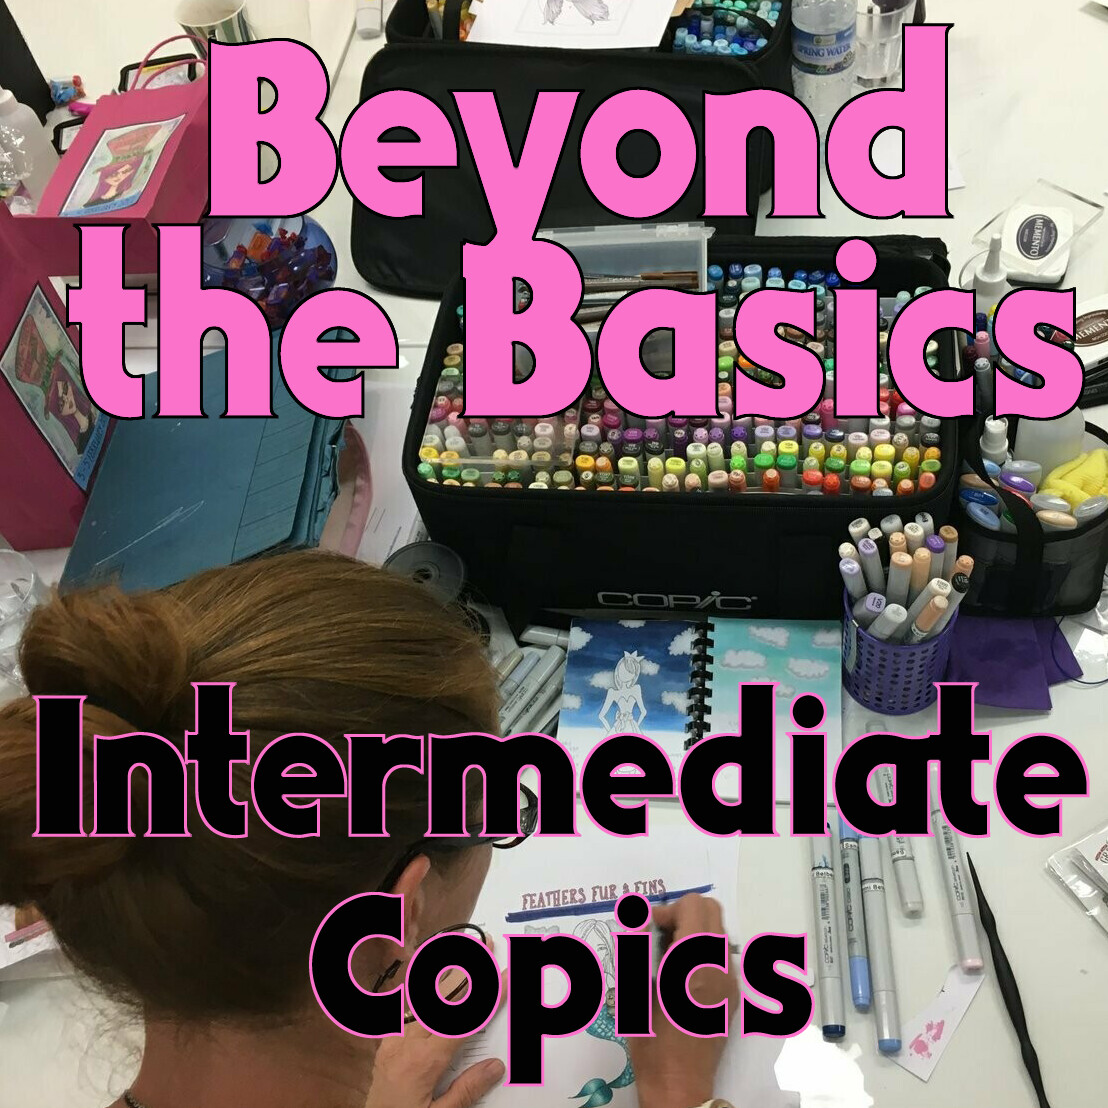 Copics 2 :: Beyond the Basics - Fri 6th Sep 10:30am